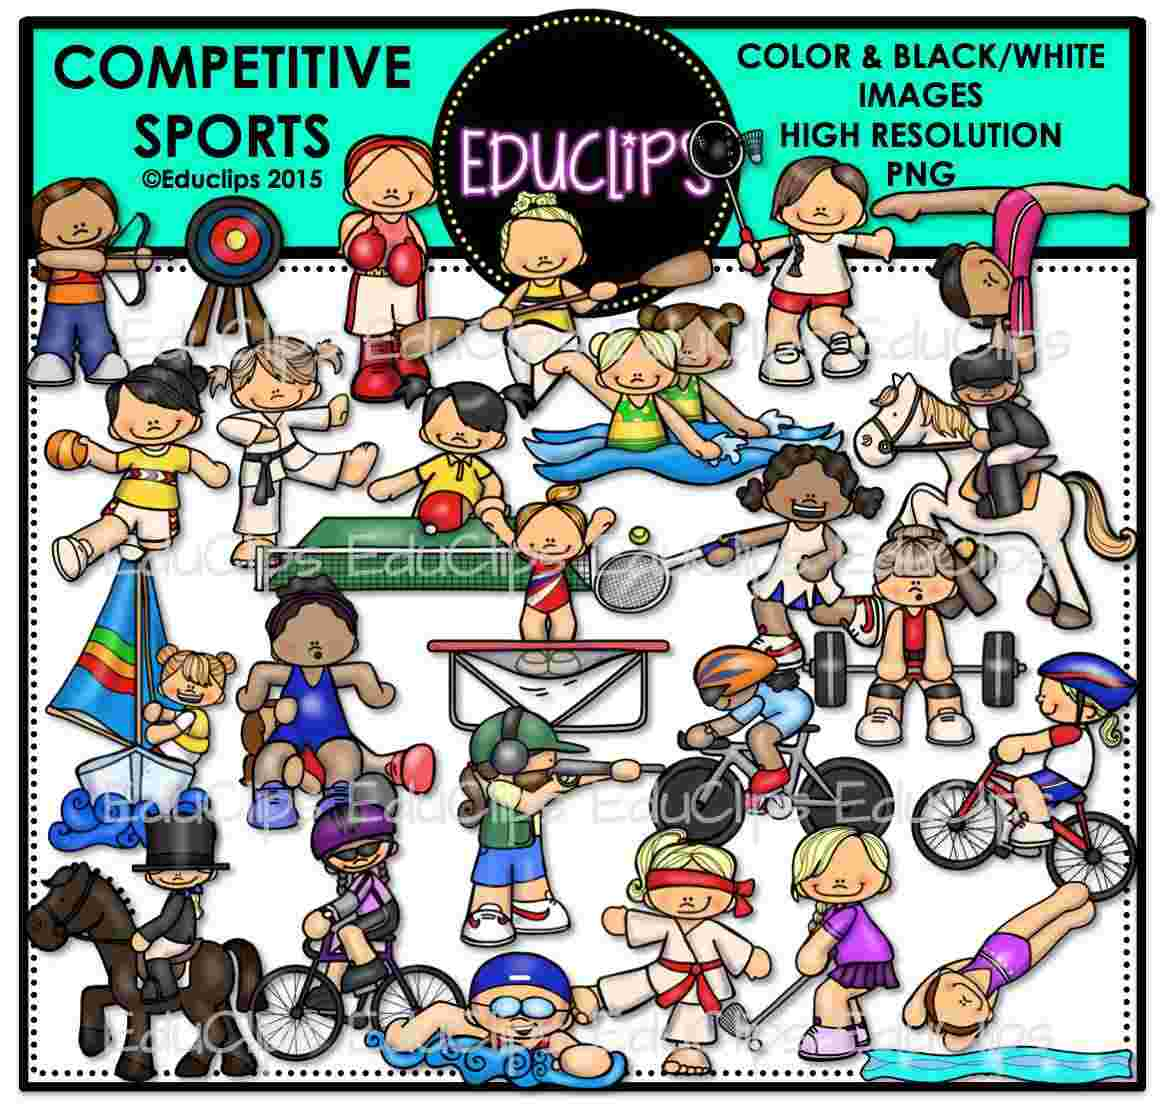 Best Cliparts: Clipart Of Competition Sports Competitive.